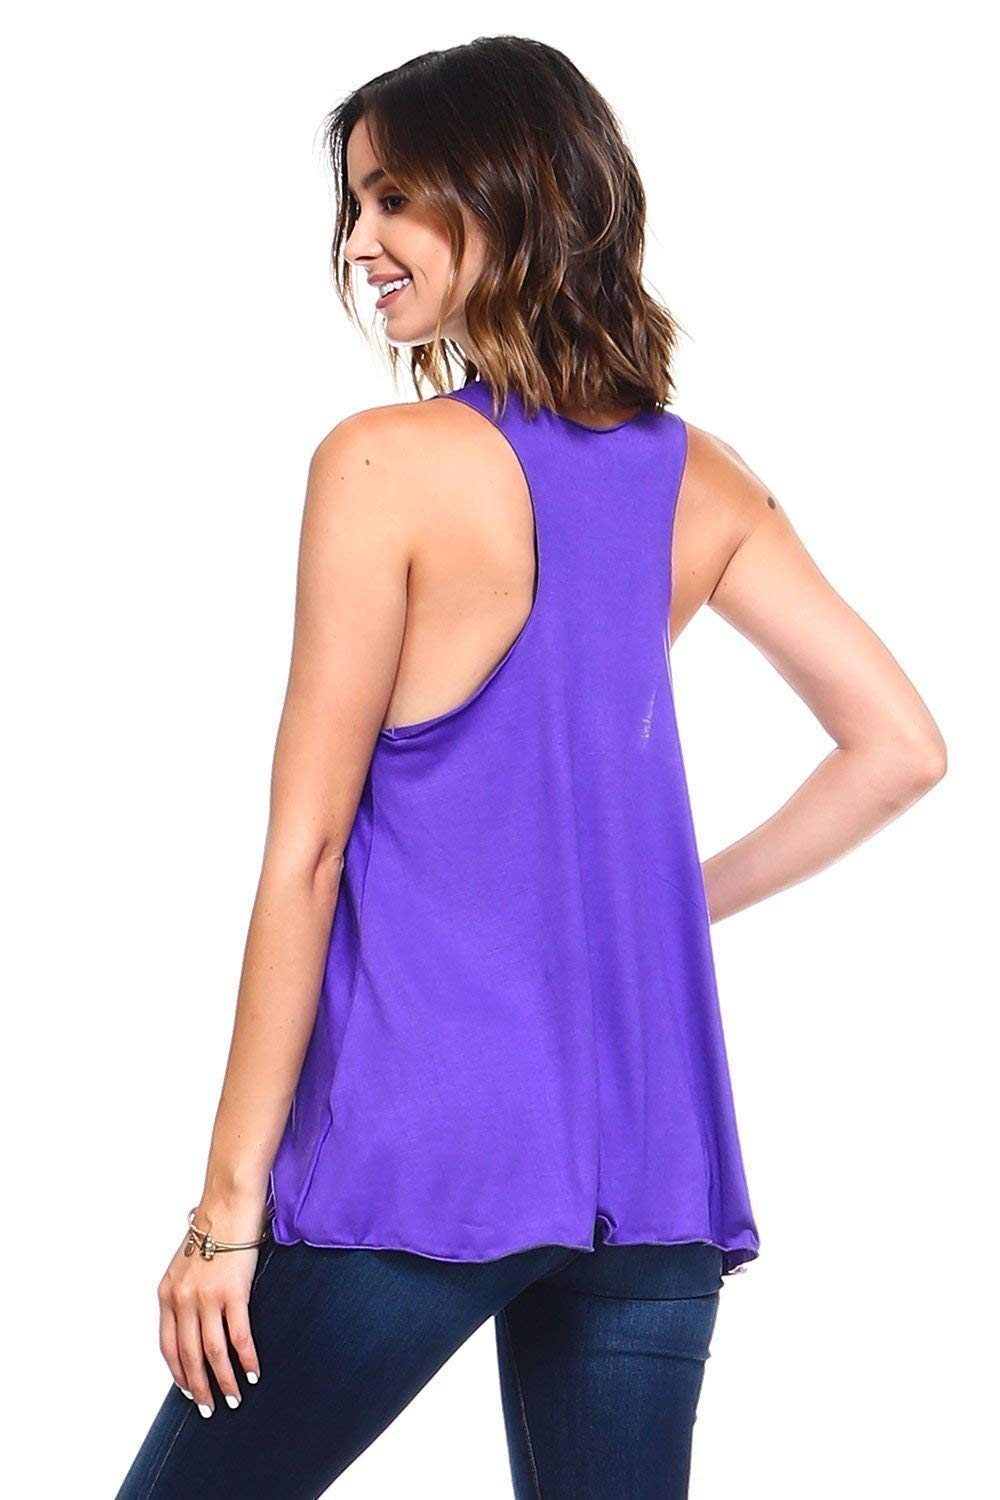 Simplicitie Womens Purple Sleeveless Loose Fit Flowy Workout Racerback Tank Top Plus Size Made in USA